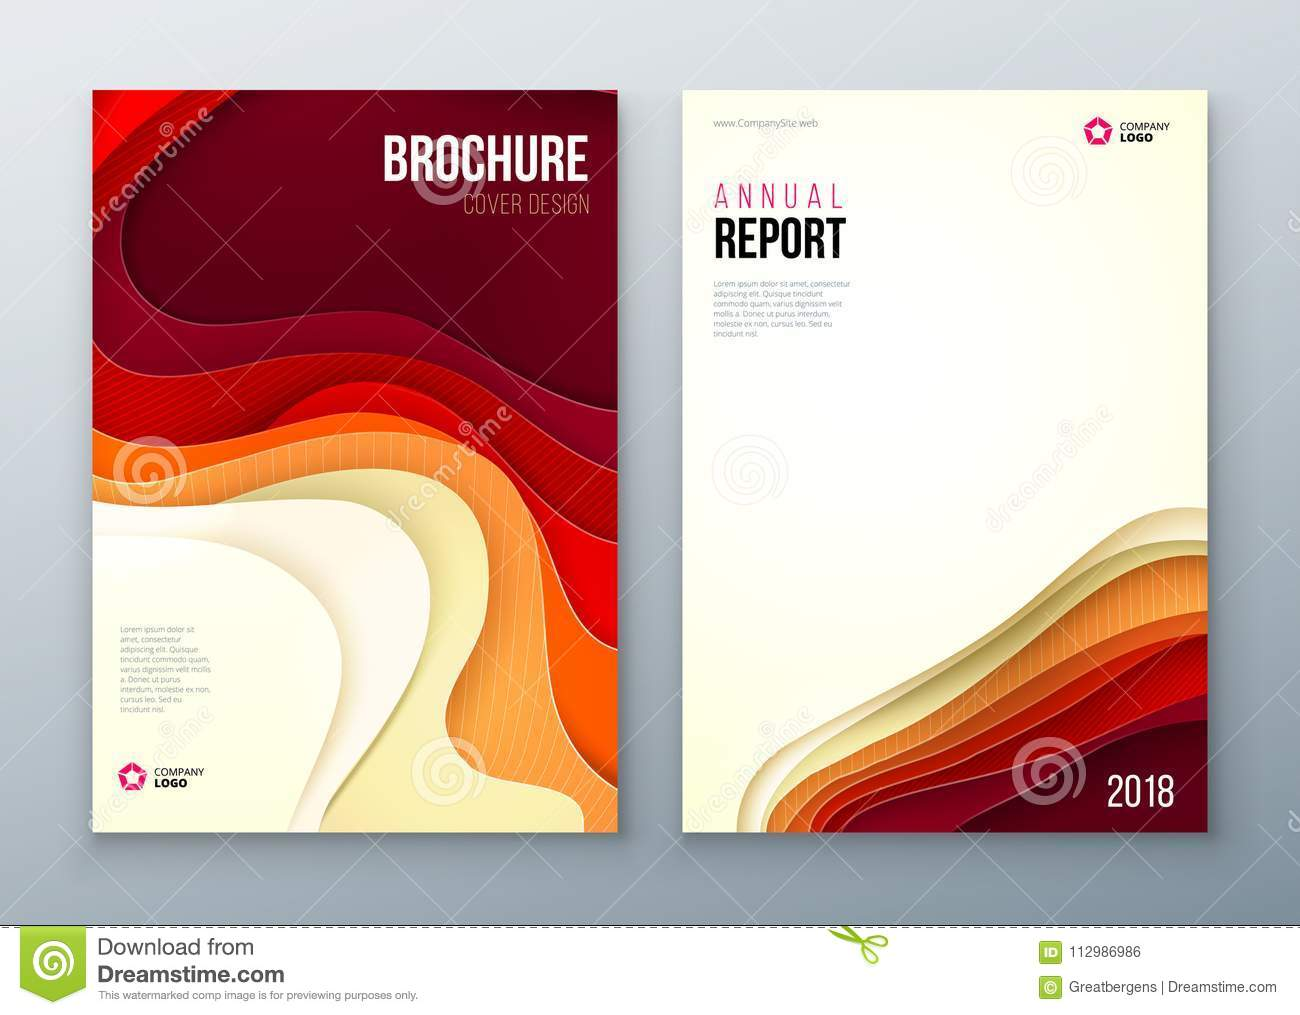 Paper cut brochure design. Paper carve abstract cover for brochure flyer magazine annual report or catalog design